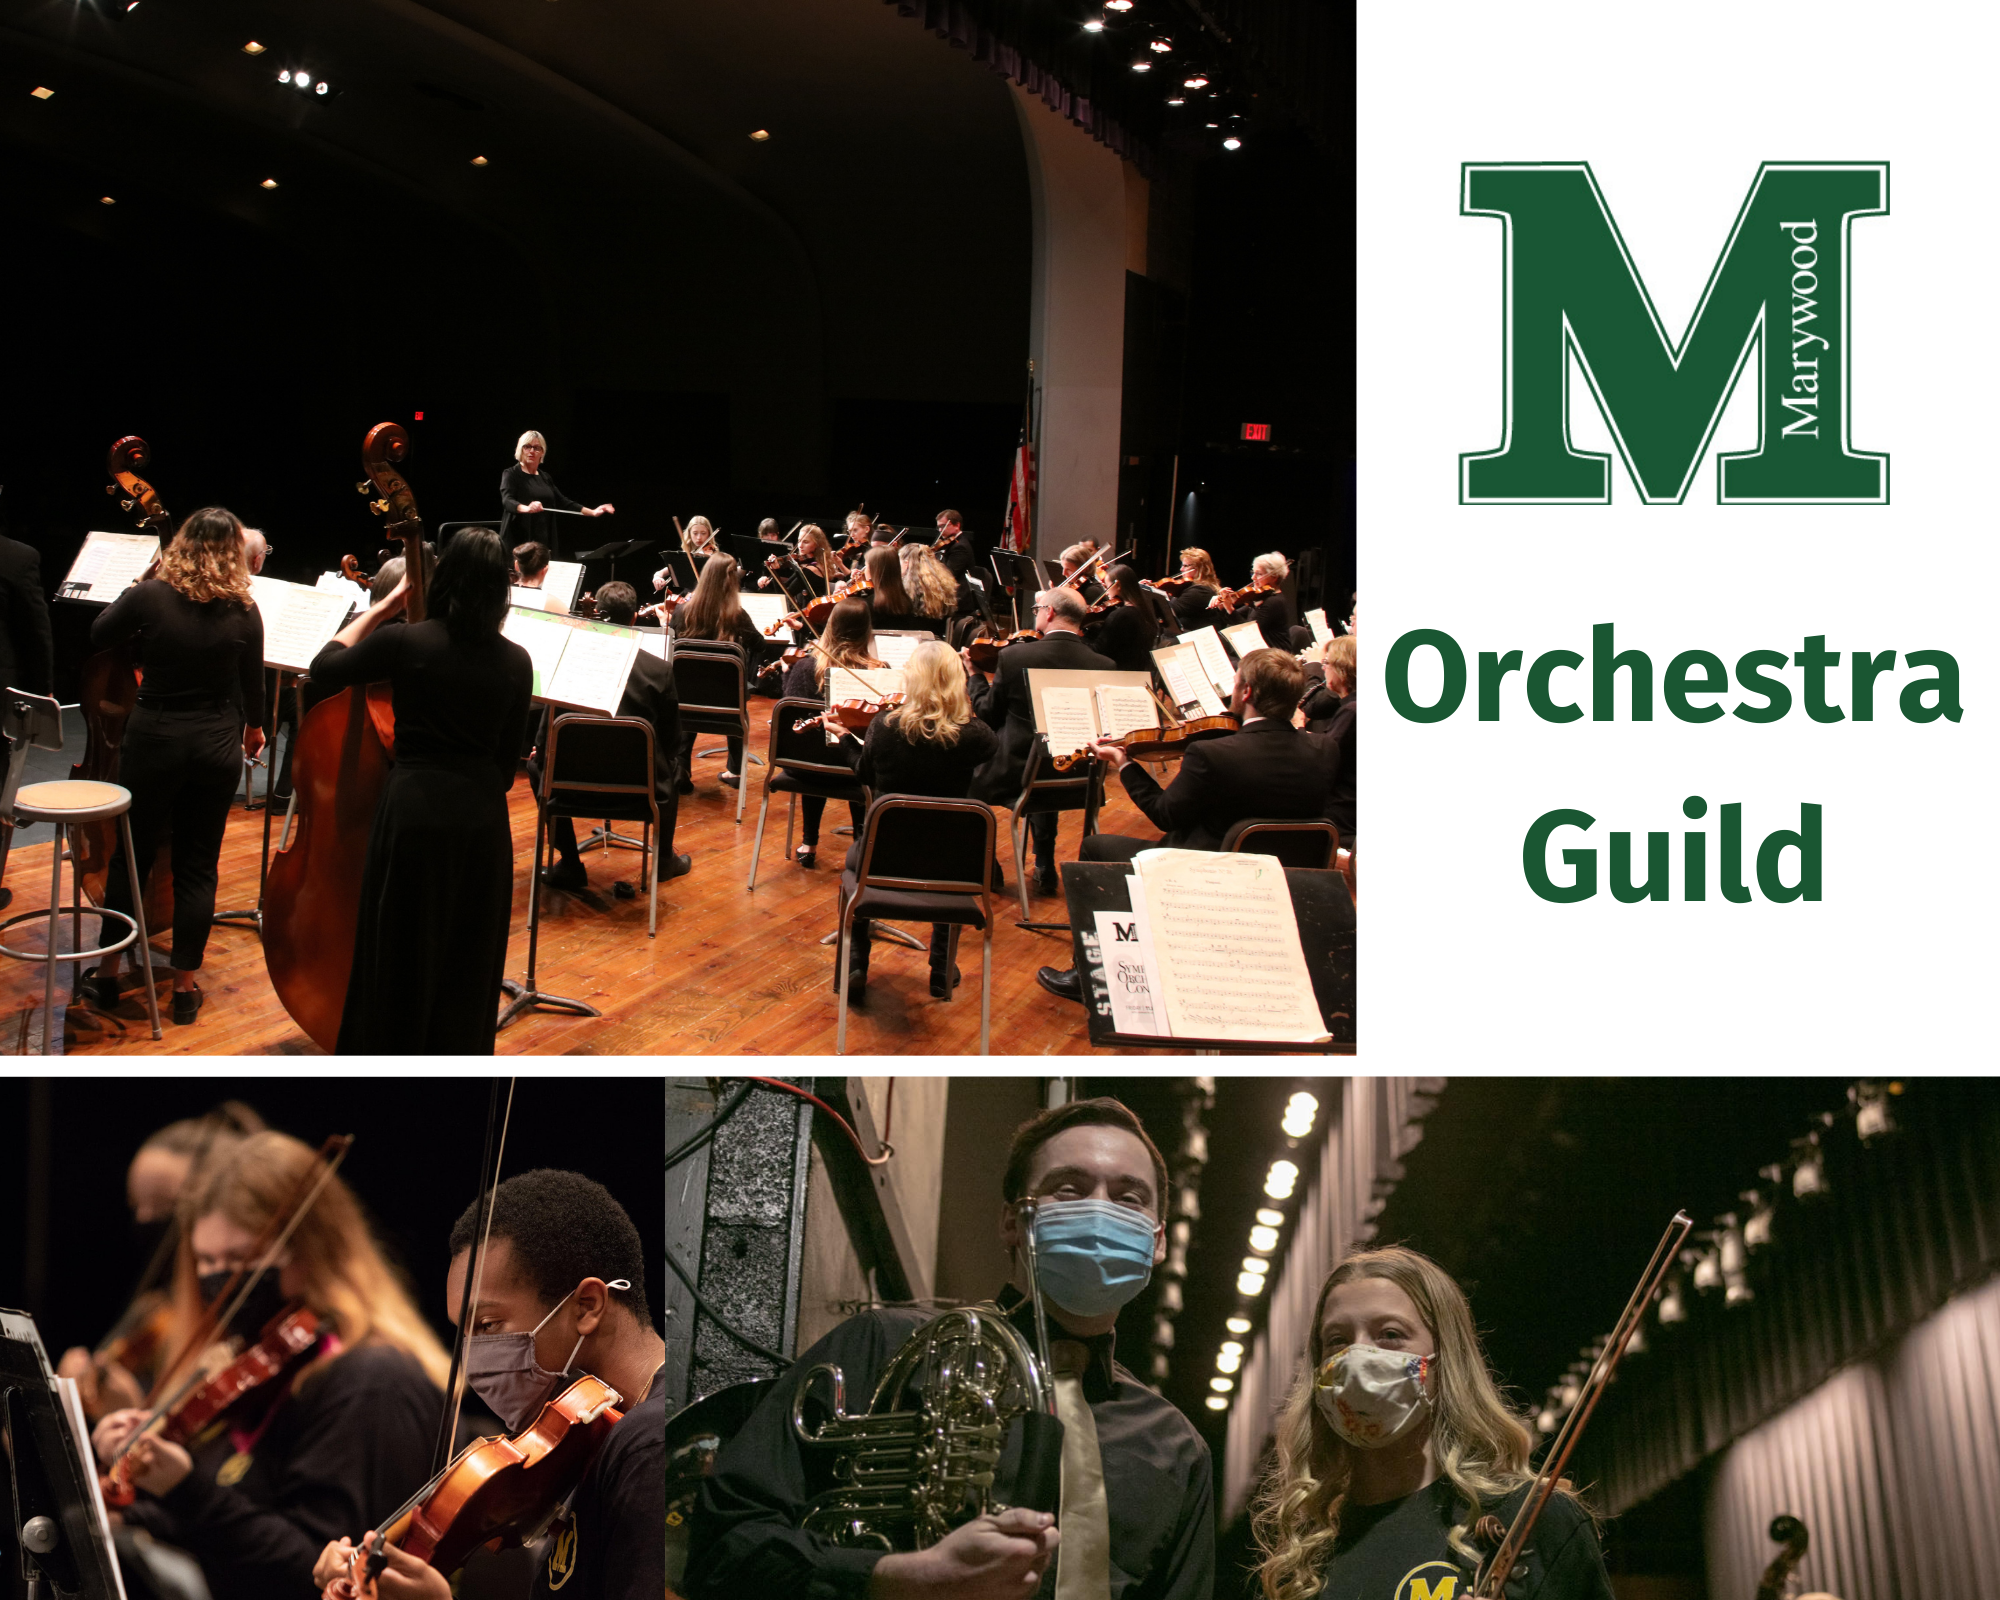 Marywood Orchestra Guild